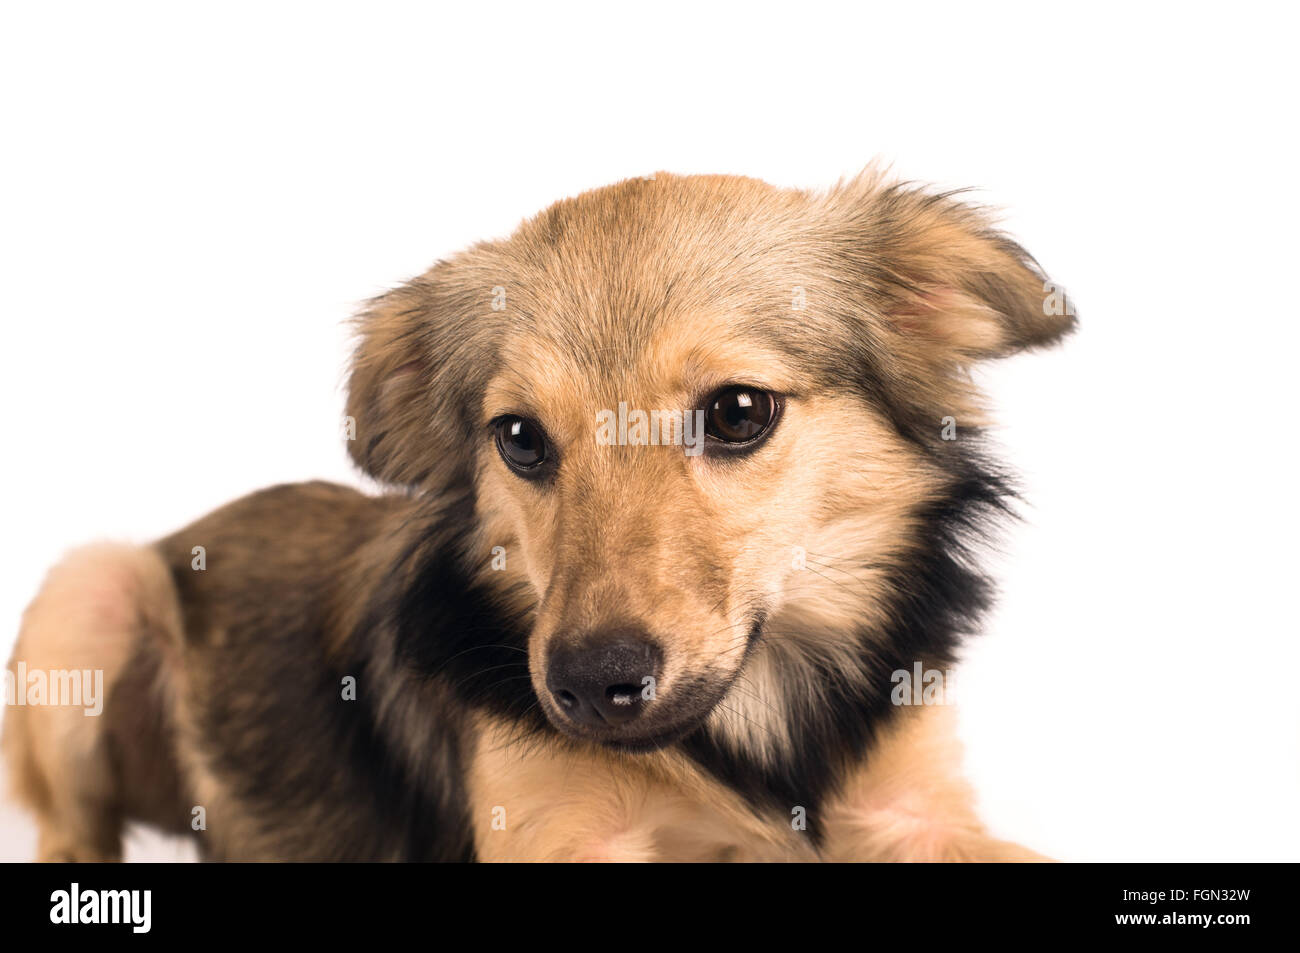 20 Irresistibly Cute Photos of Mixed Breed Dogs